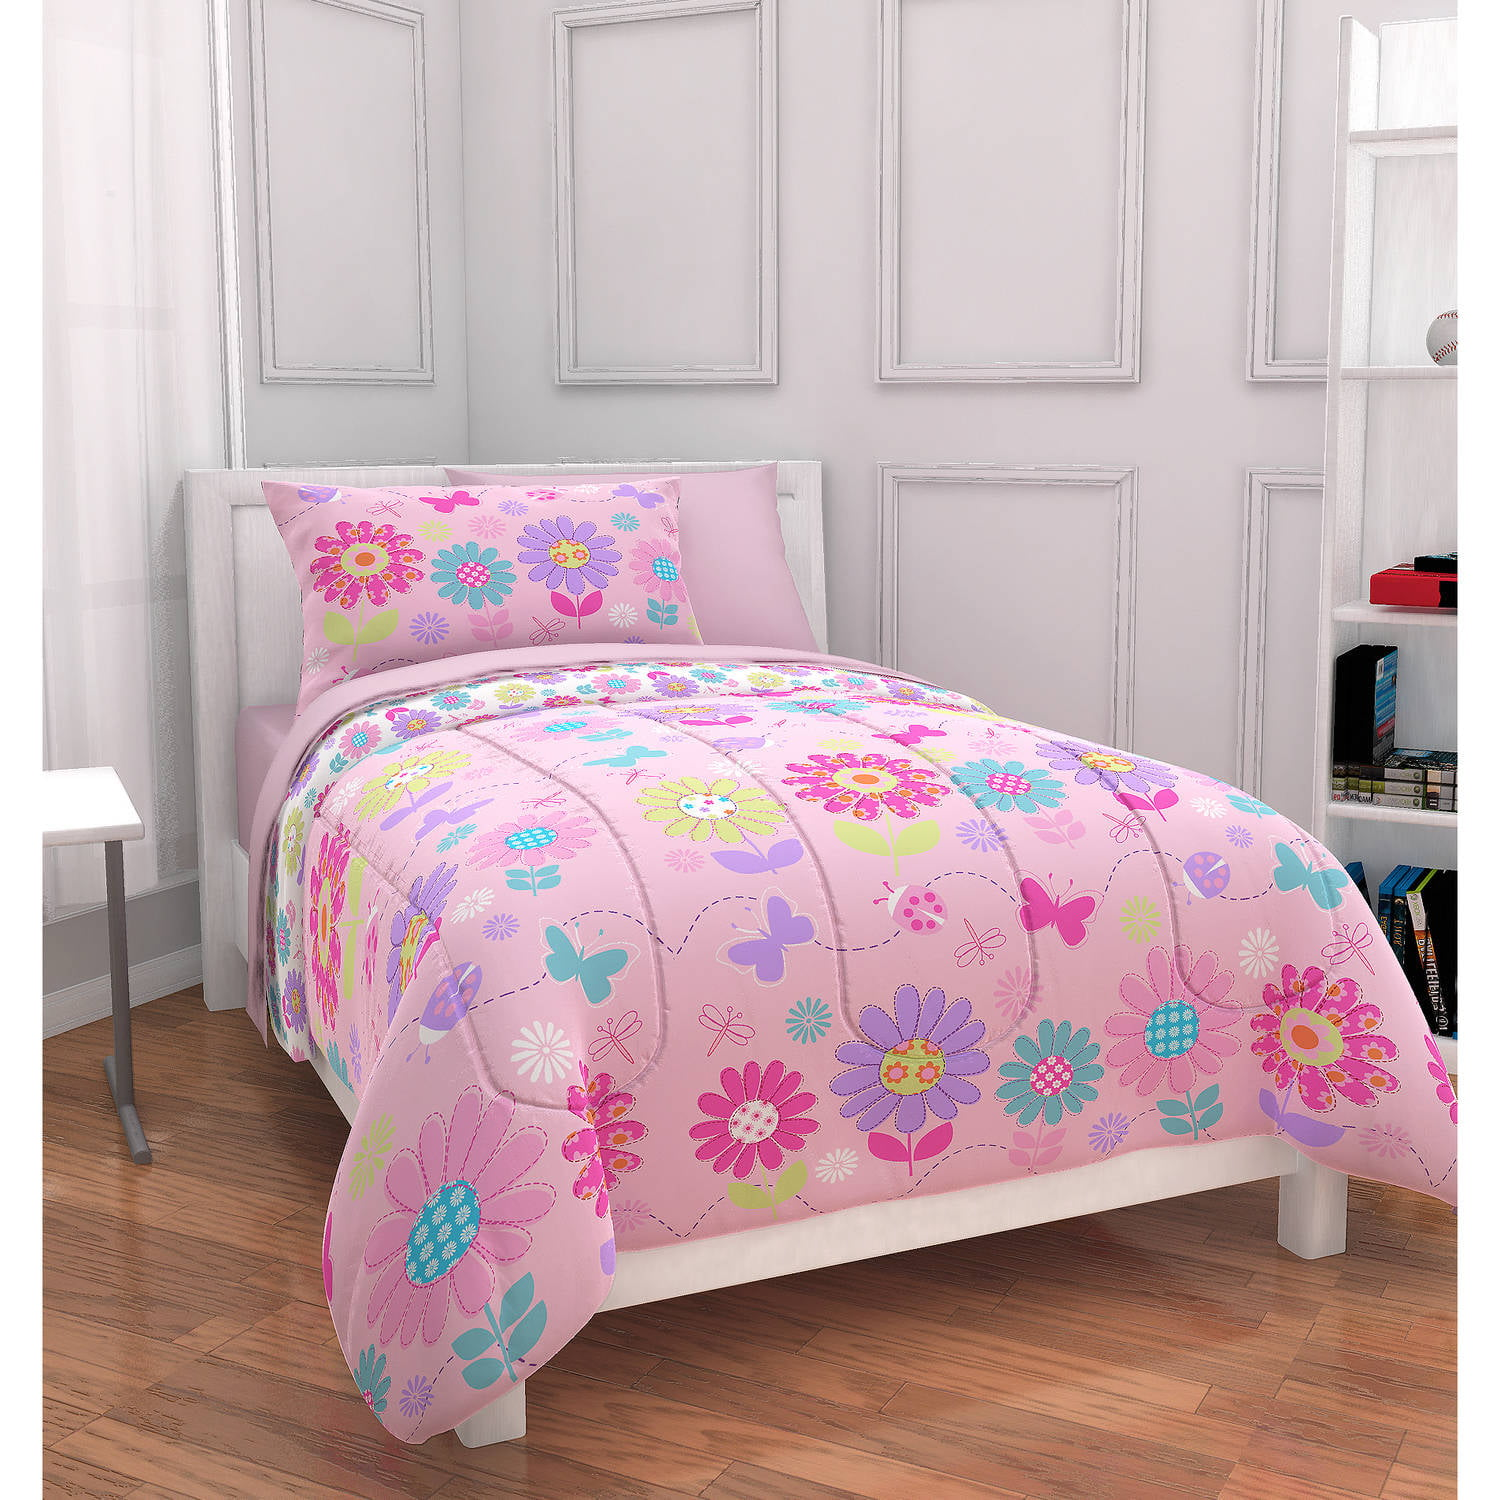 set four post elegant bedroom rgb products white full twin beds wash teen s furniture youthset for bed girls